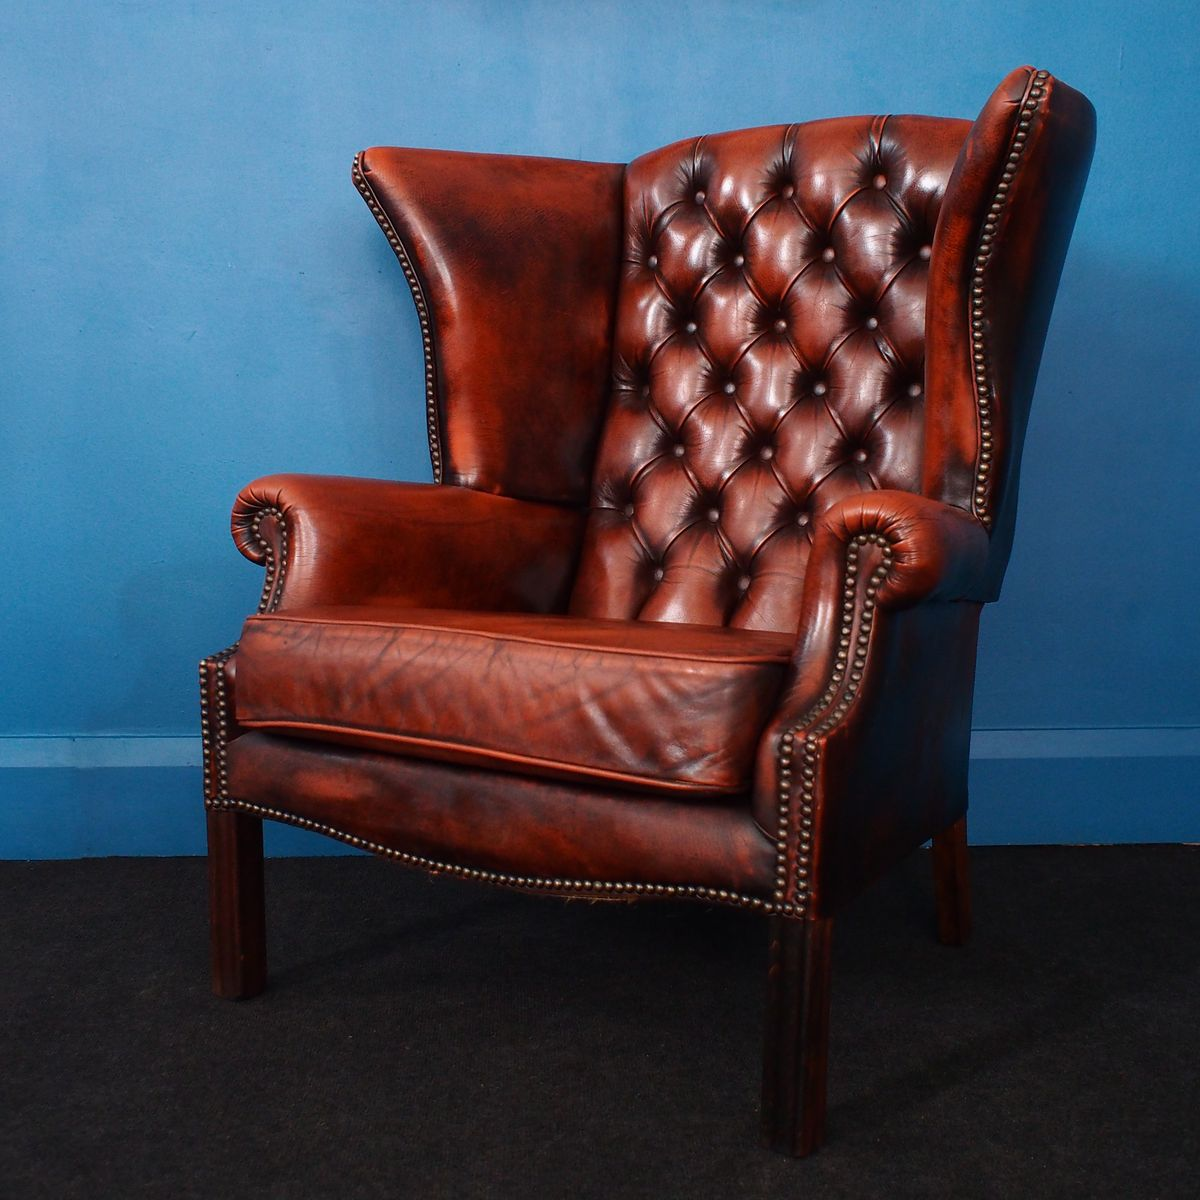 fauteuil chesterfield vintage oreilles en cuir brun terre de sienna angleterre 1980s en. Black Bedroom Furniture Sets. Home Design Ideas